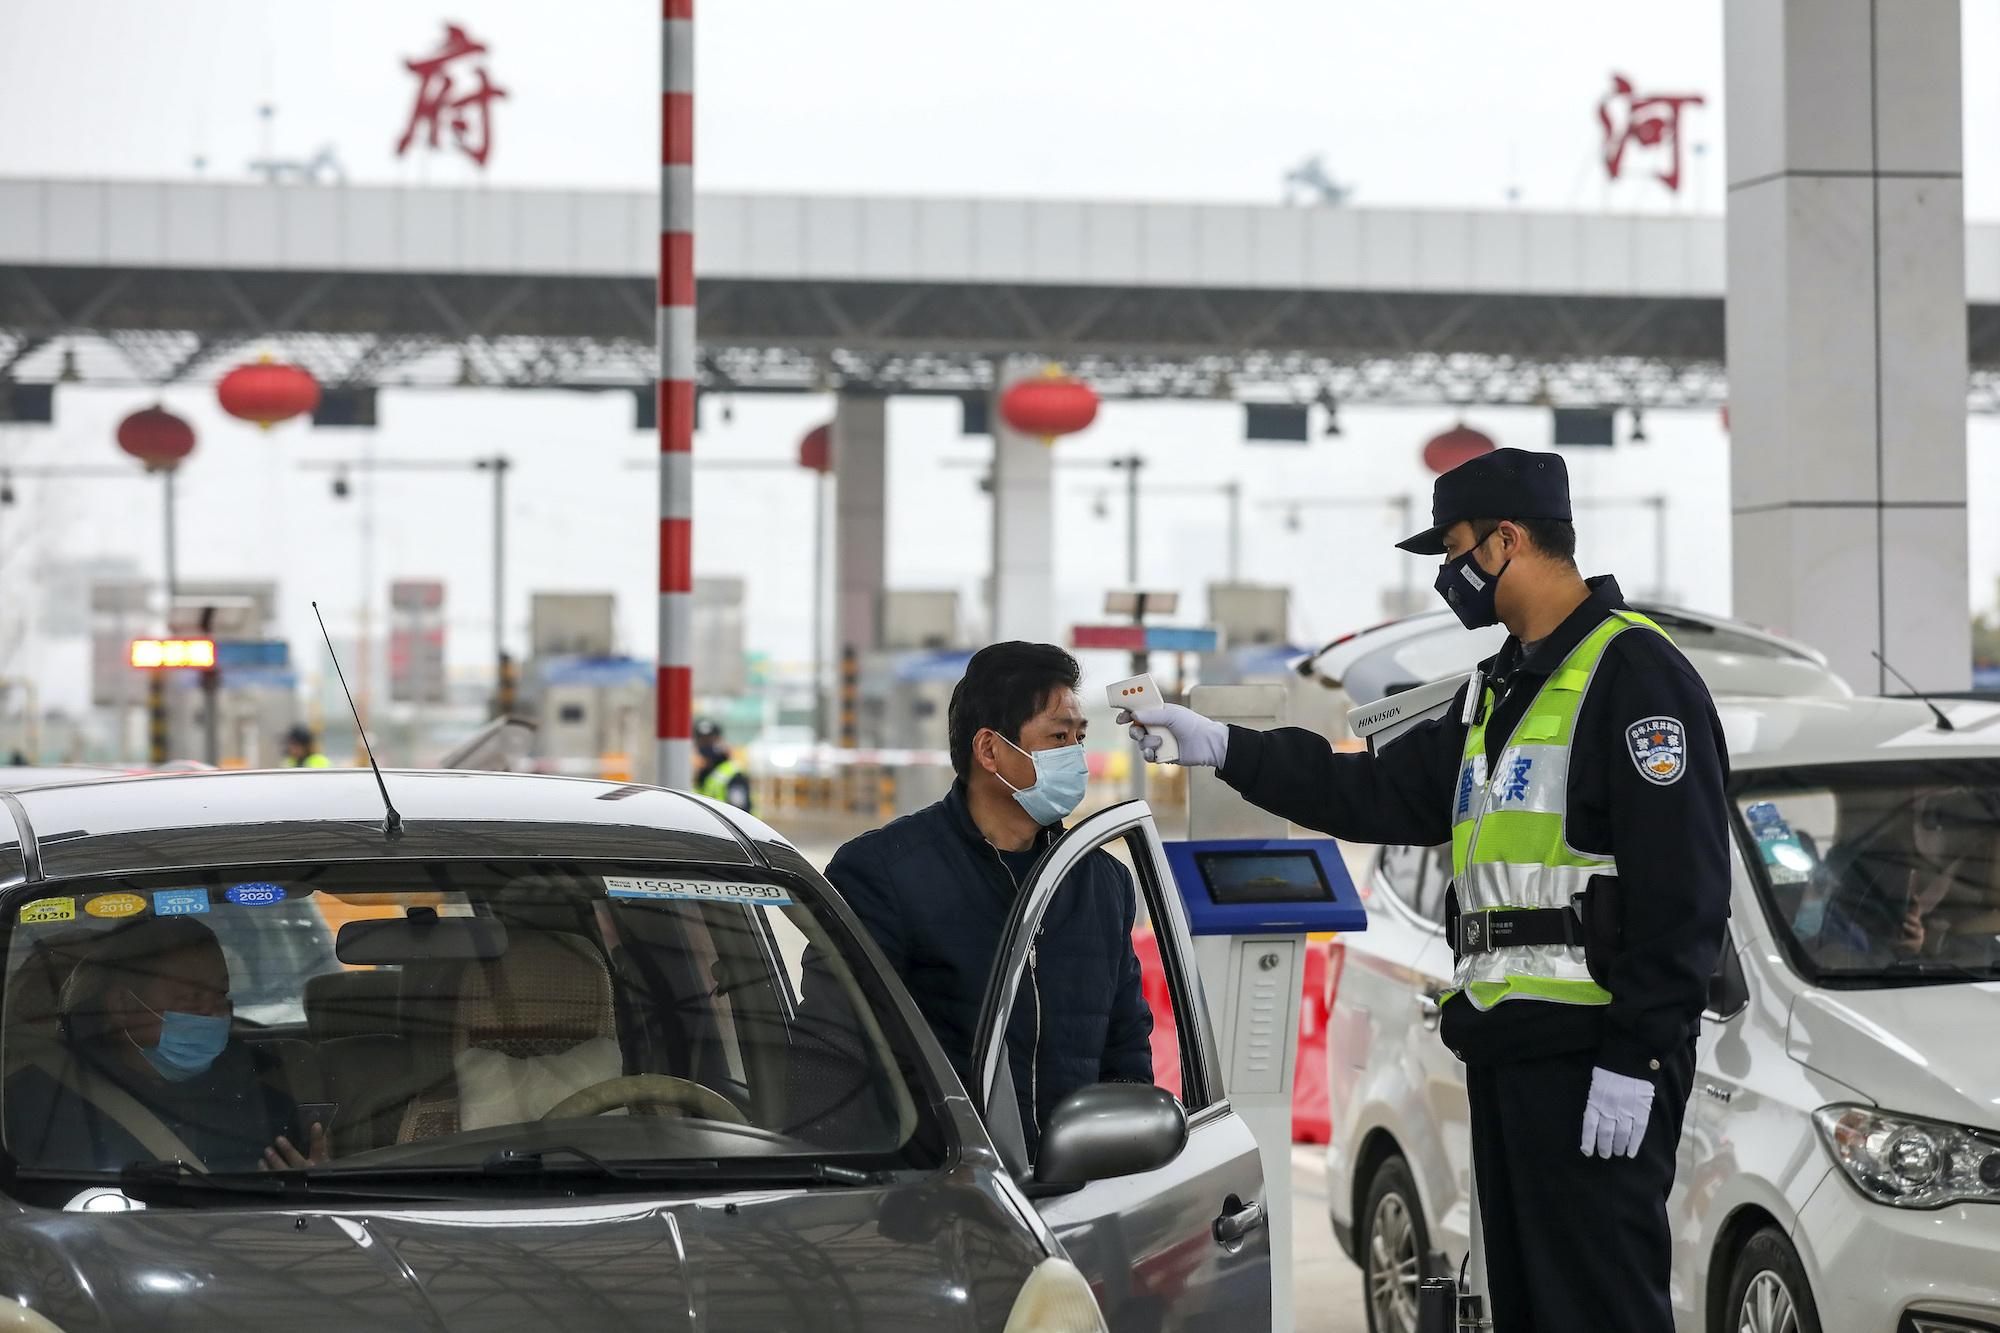 Social controls, SARS experience help China close off cities